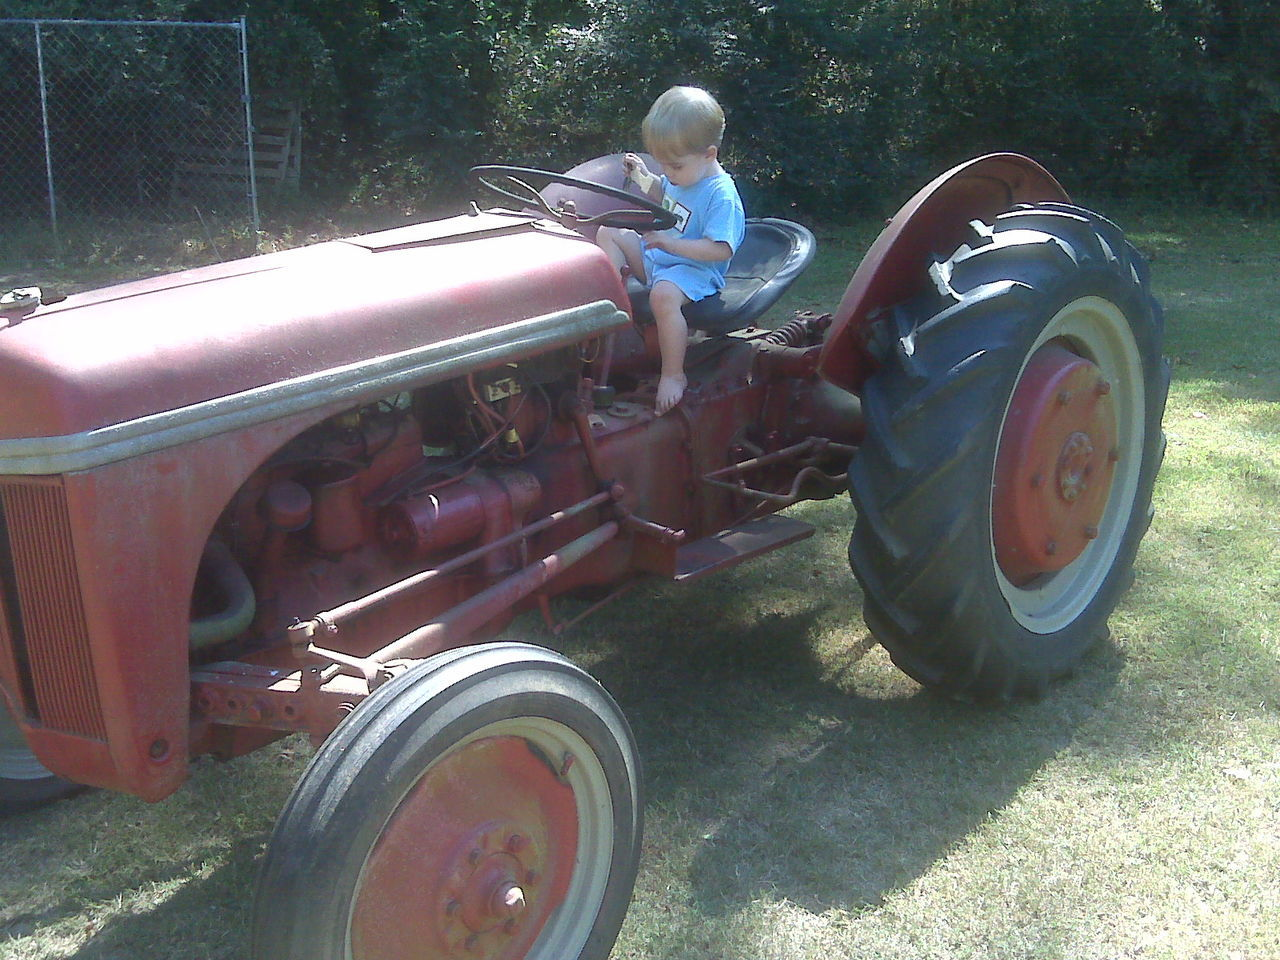 Childhood Land Vehicle Mode Of Transport Old Old Tractors Tractor Transportation Vintage Tractors